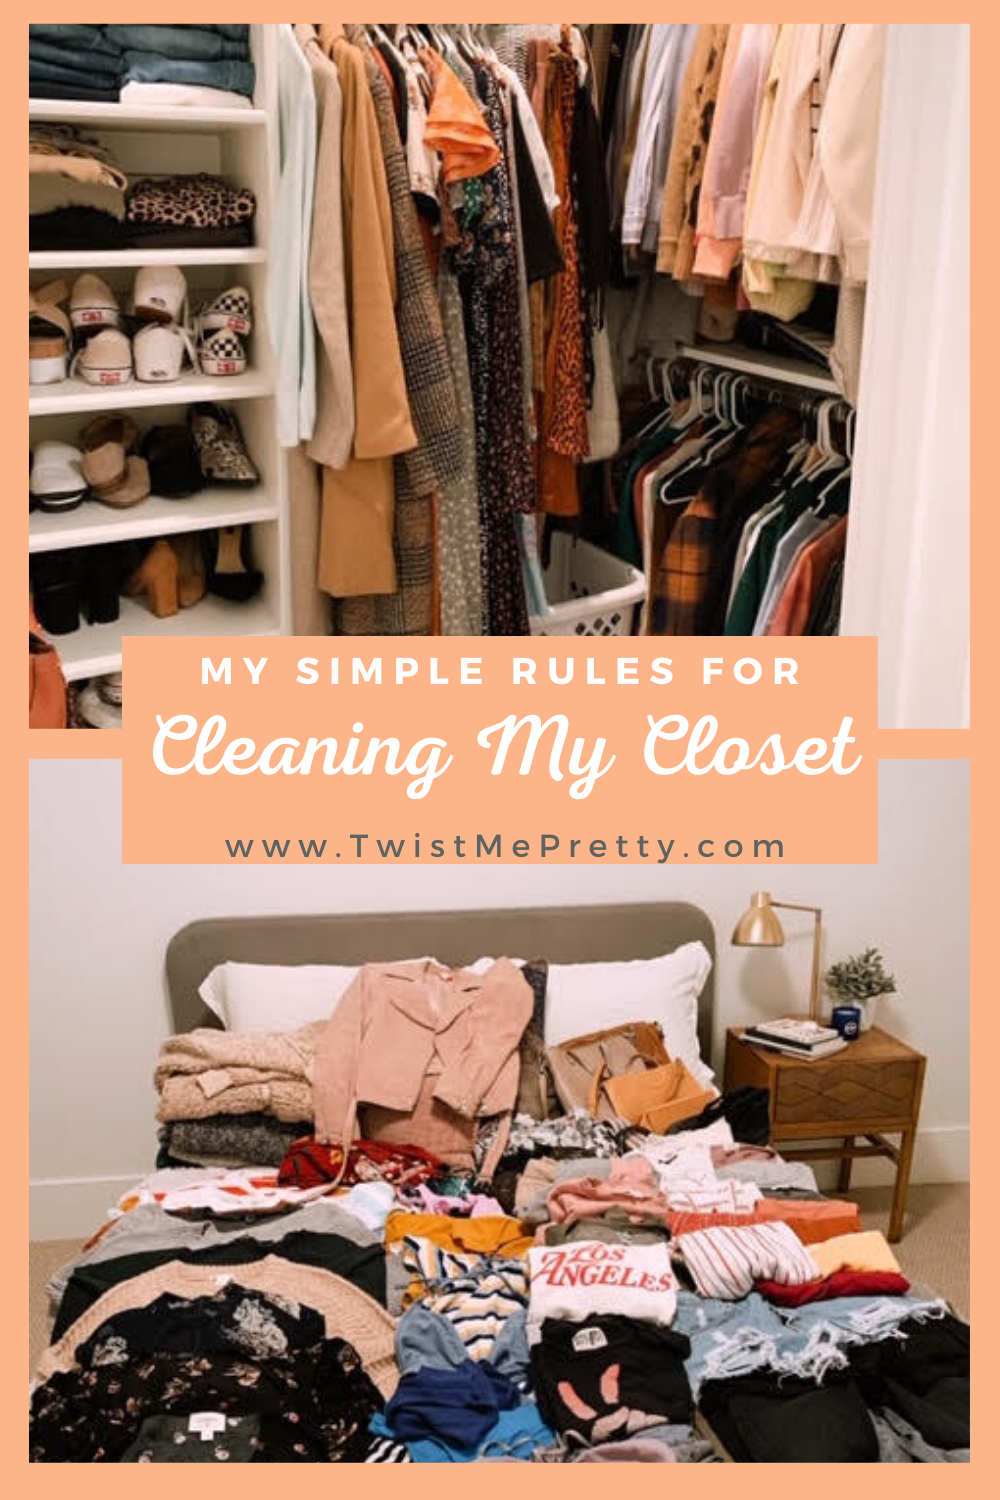 My simple rules for cleaning my closet each season. www.twistmepretty.com